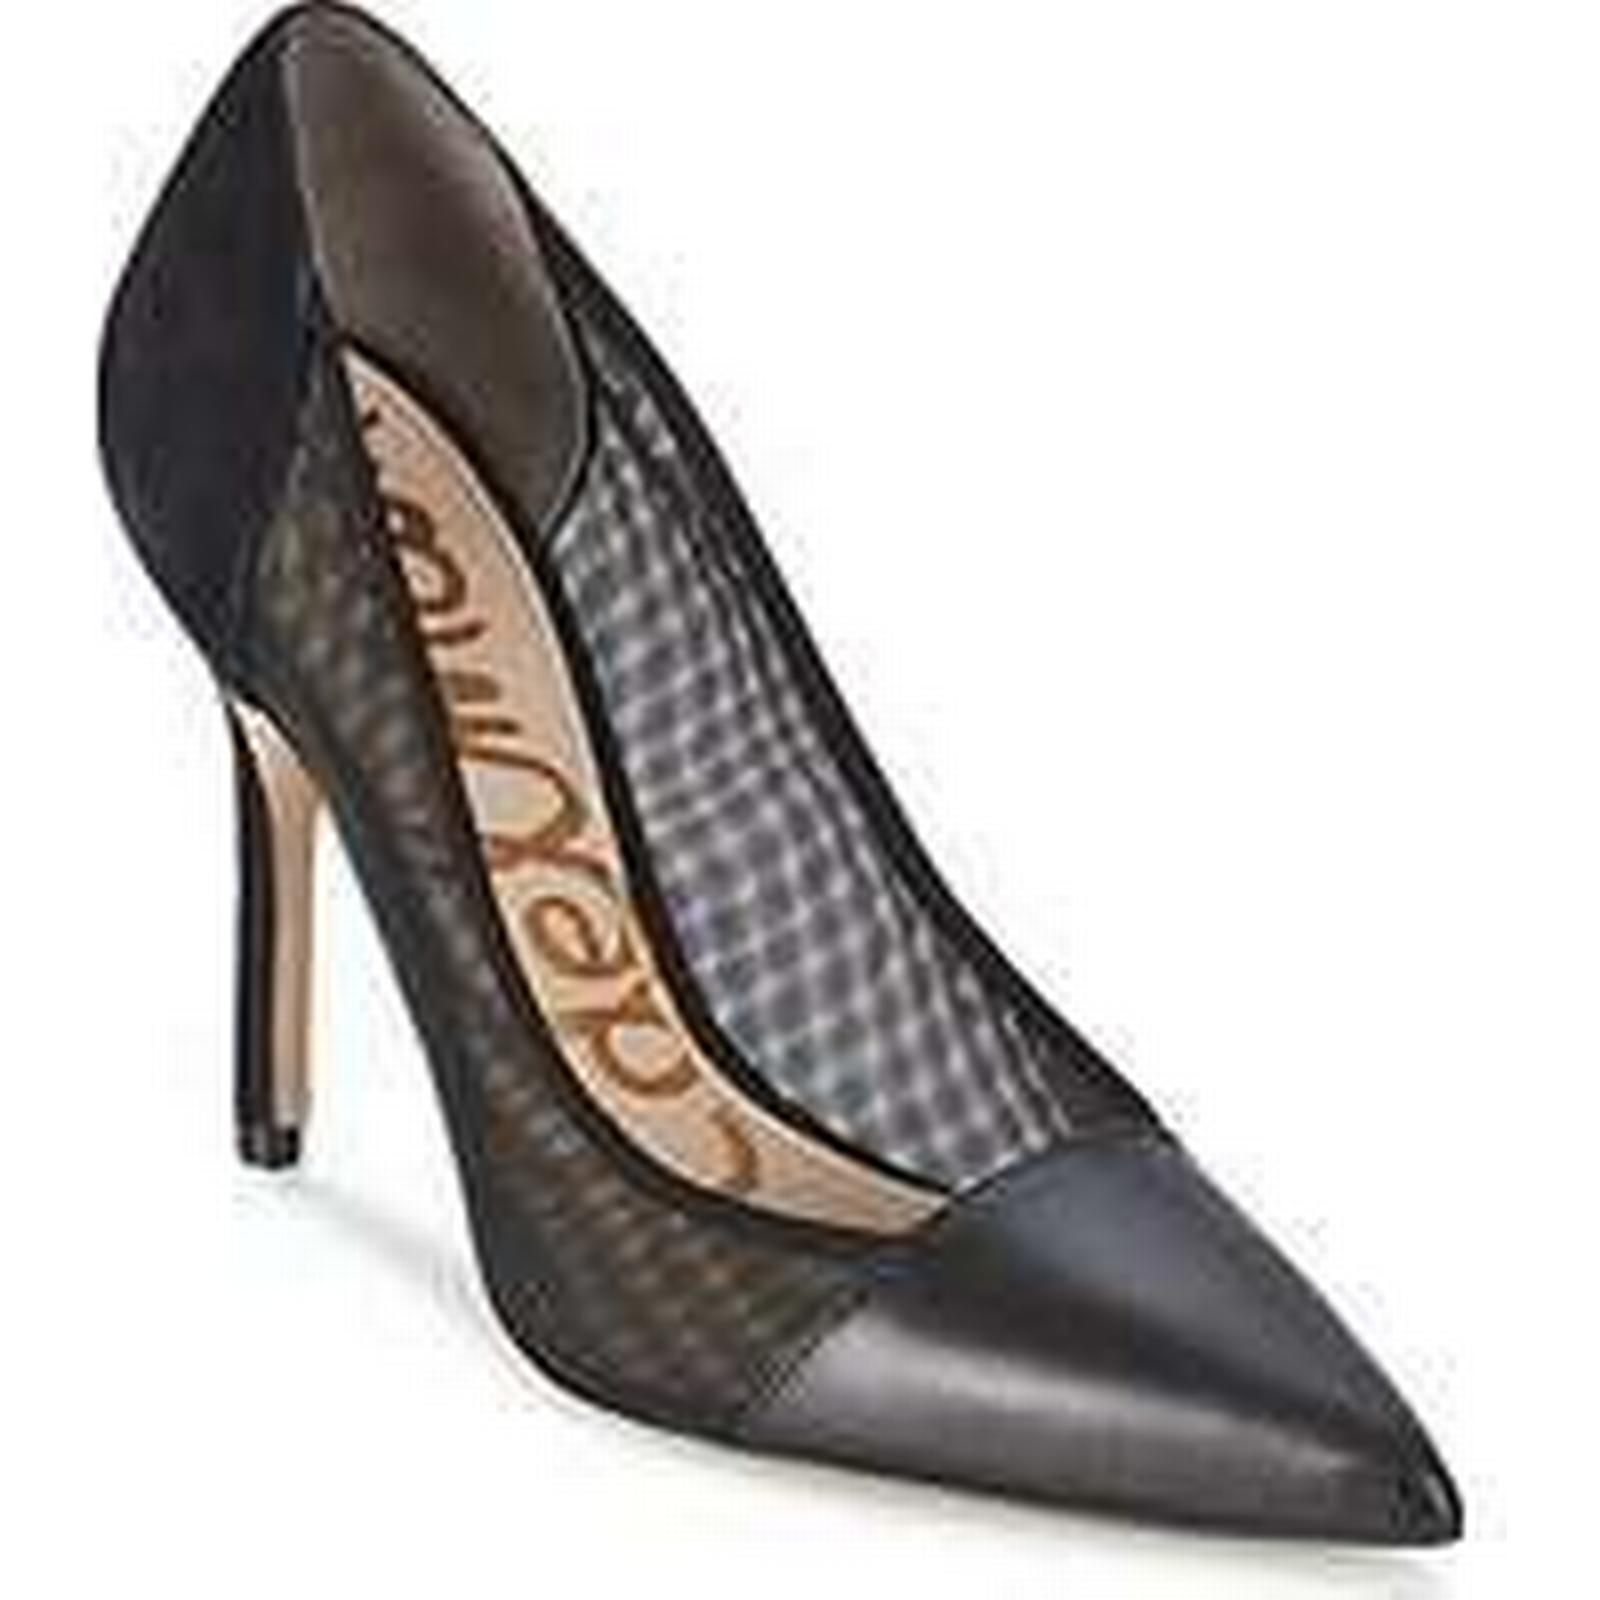 Spartoo.co.uk Court Sam Edelman DESIREE women's Court Spartoo.co.uk Shoes in Black a1a511